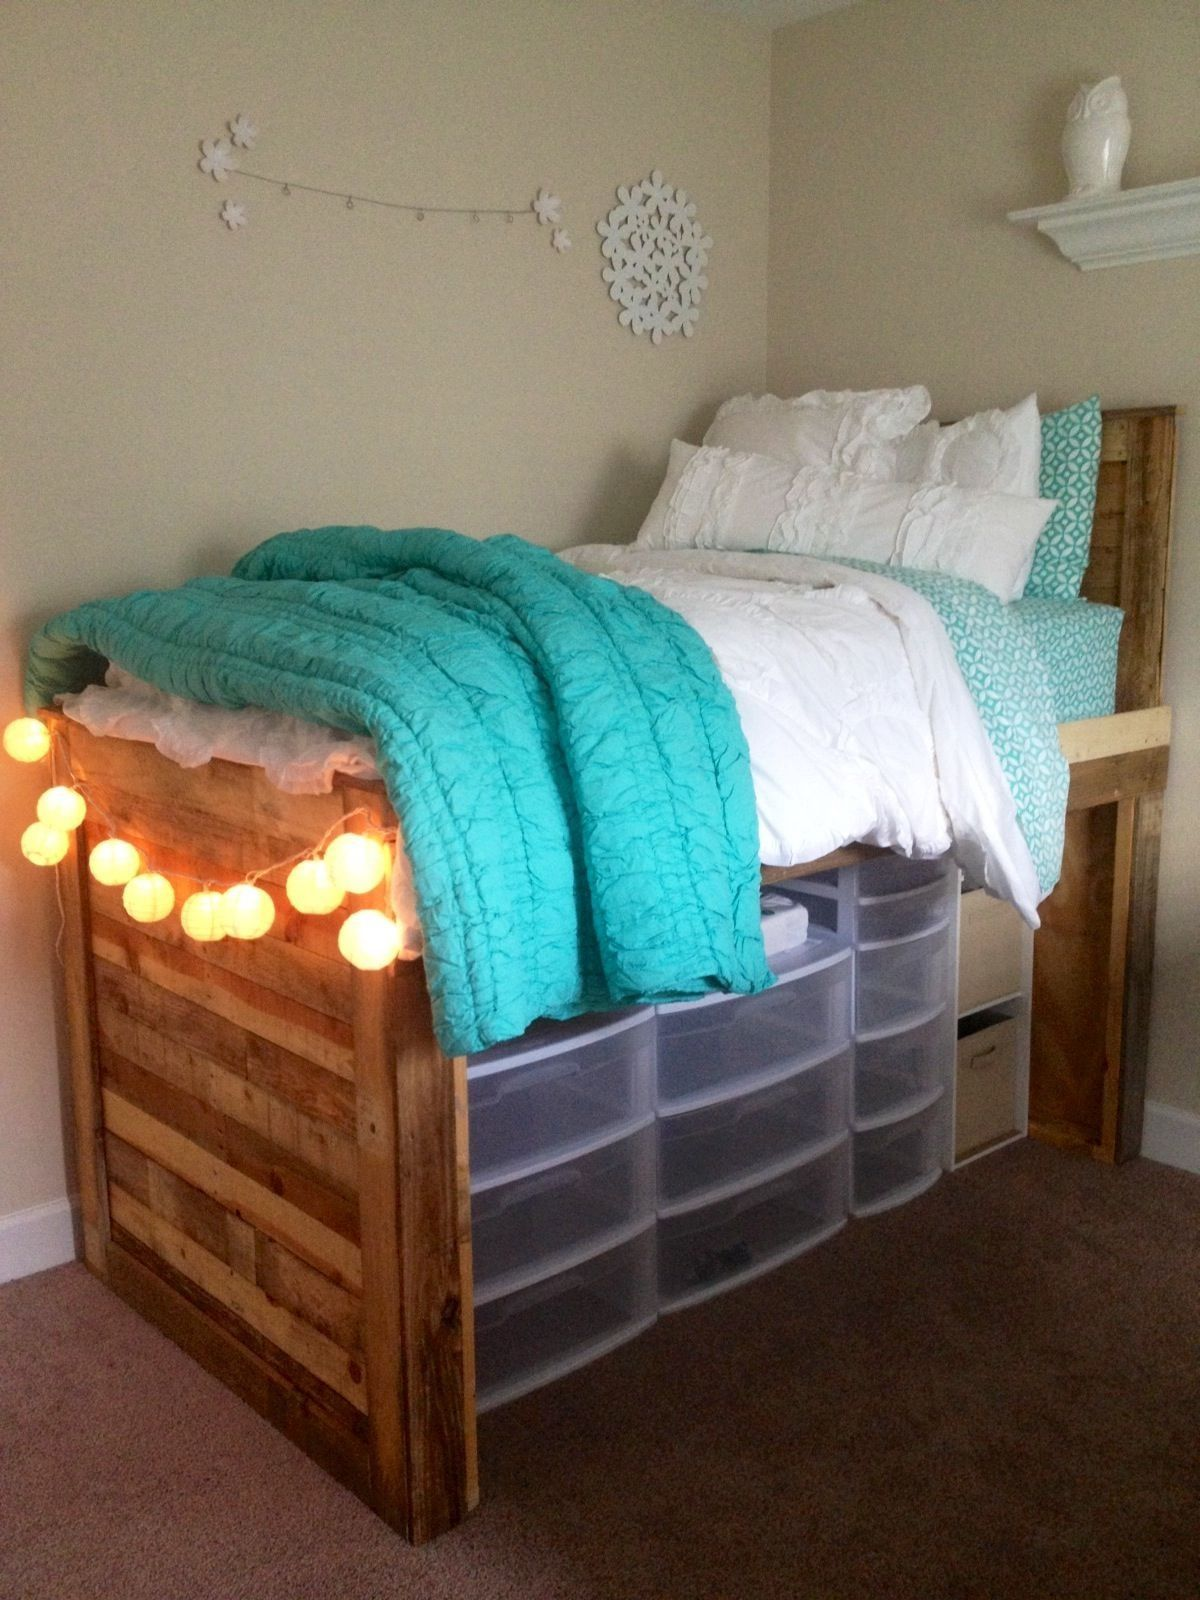 Elevated Beds With Storage 10 Easy Ways To Save Space In Your Dorm Room In 2019